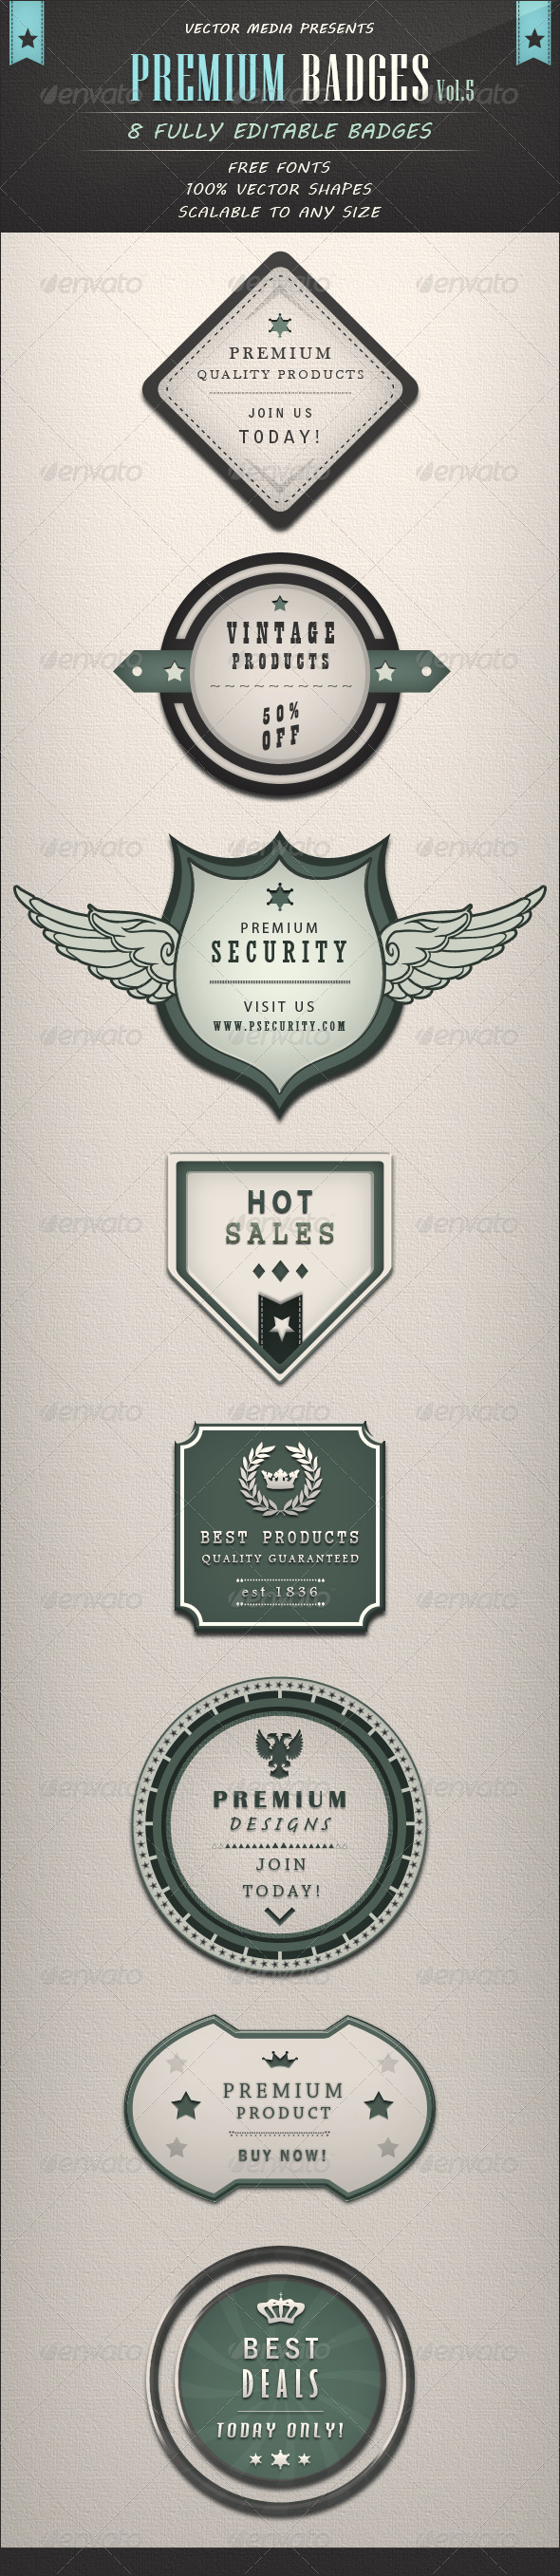 GraphicRiver Premium Badges Vol.5 3517214